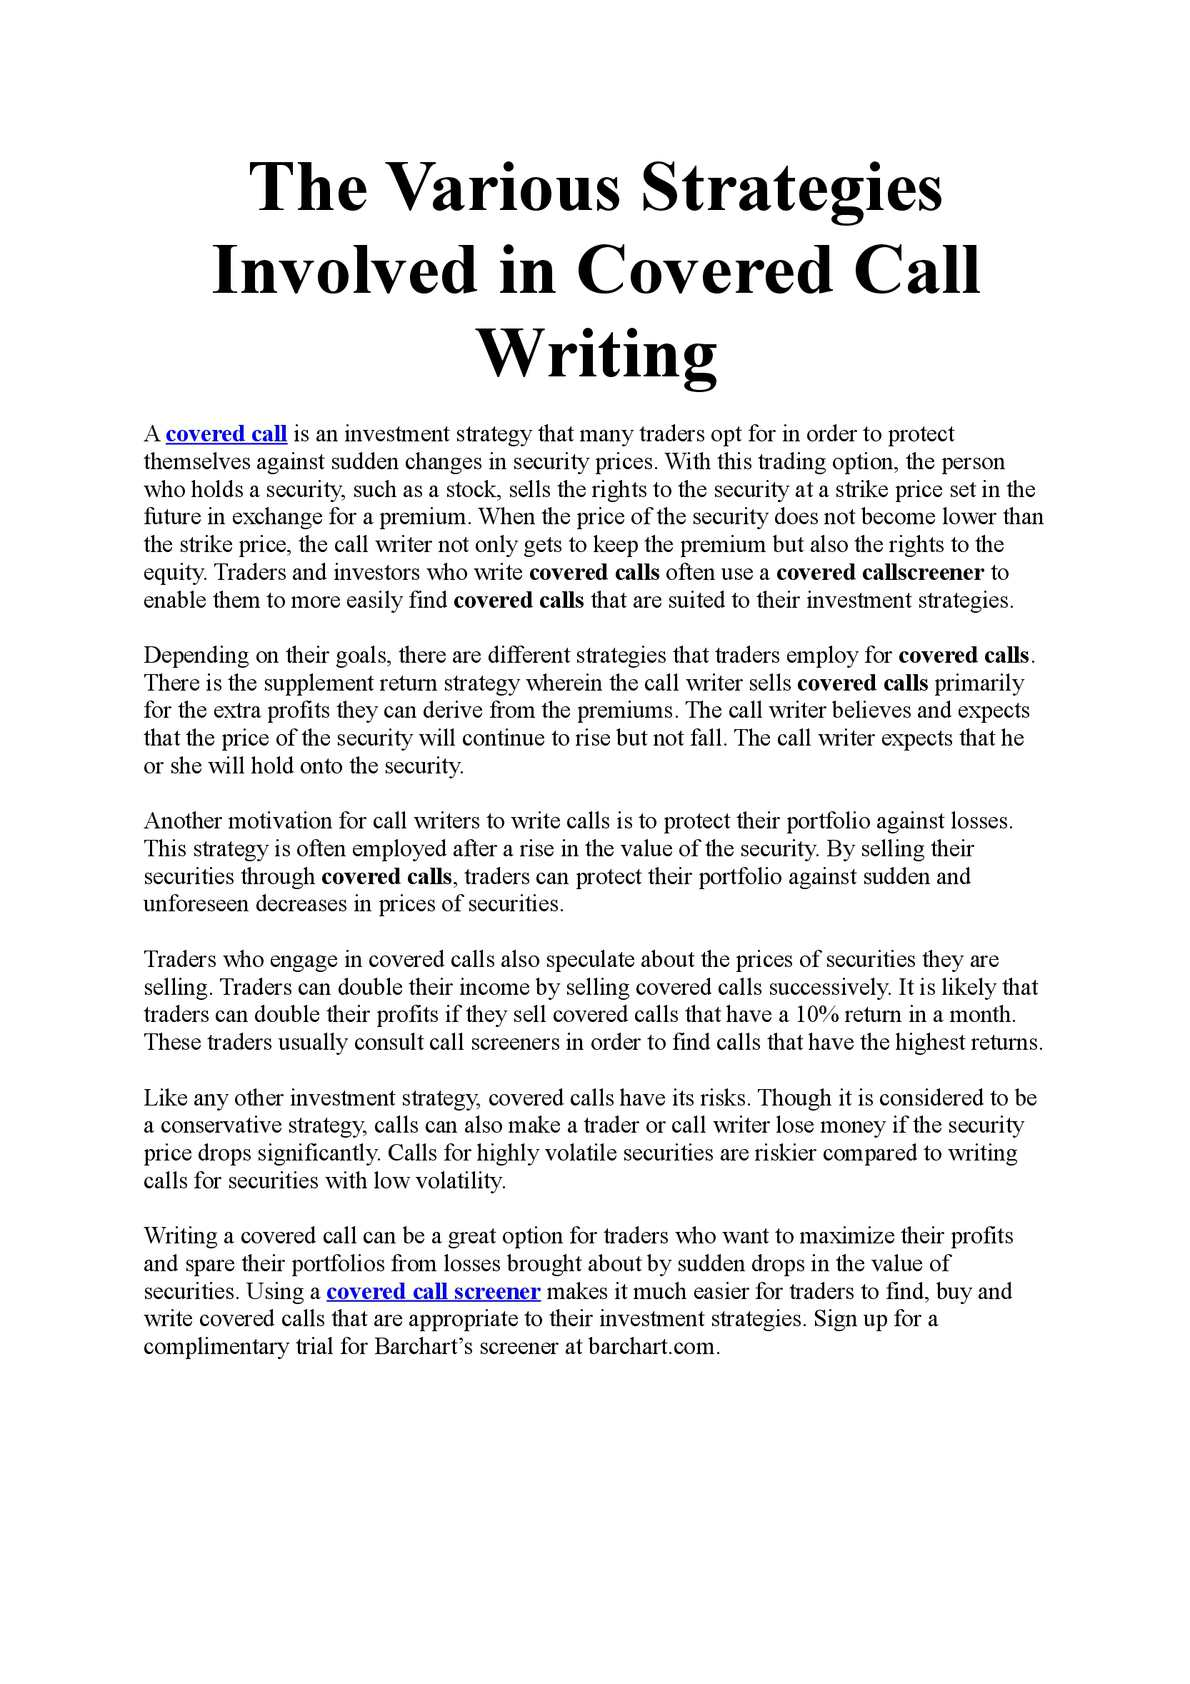 Calaméo - The Various Strategies Involved in Covered Call Writing